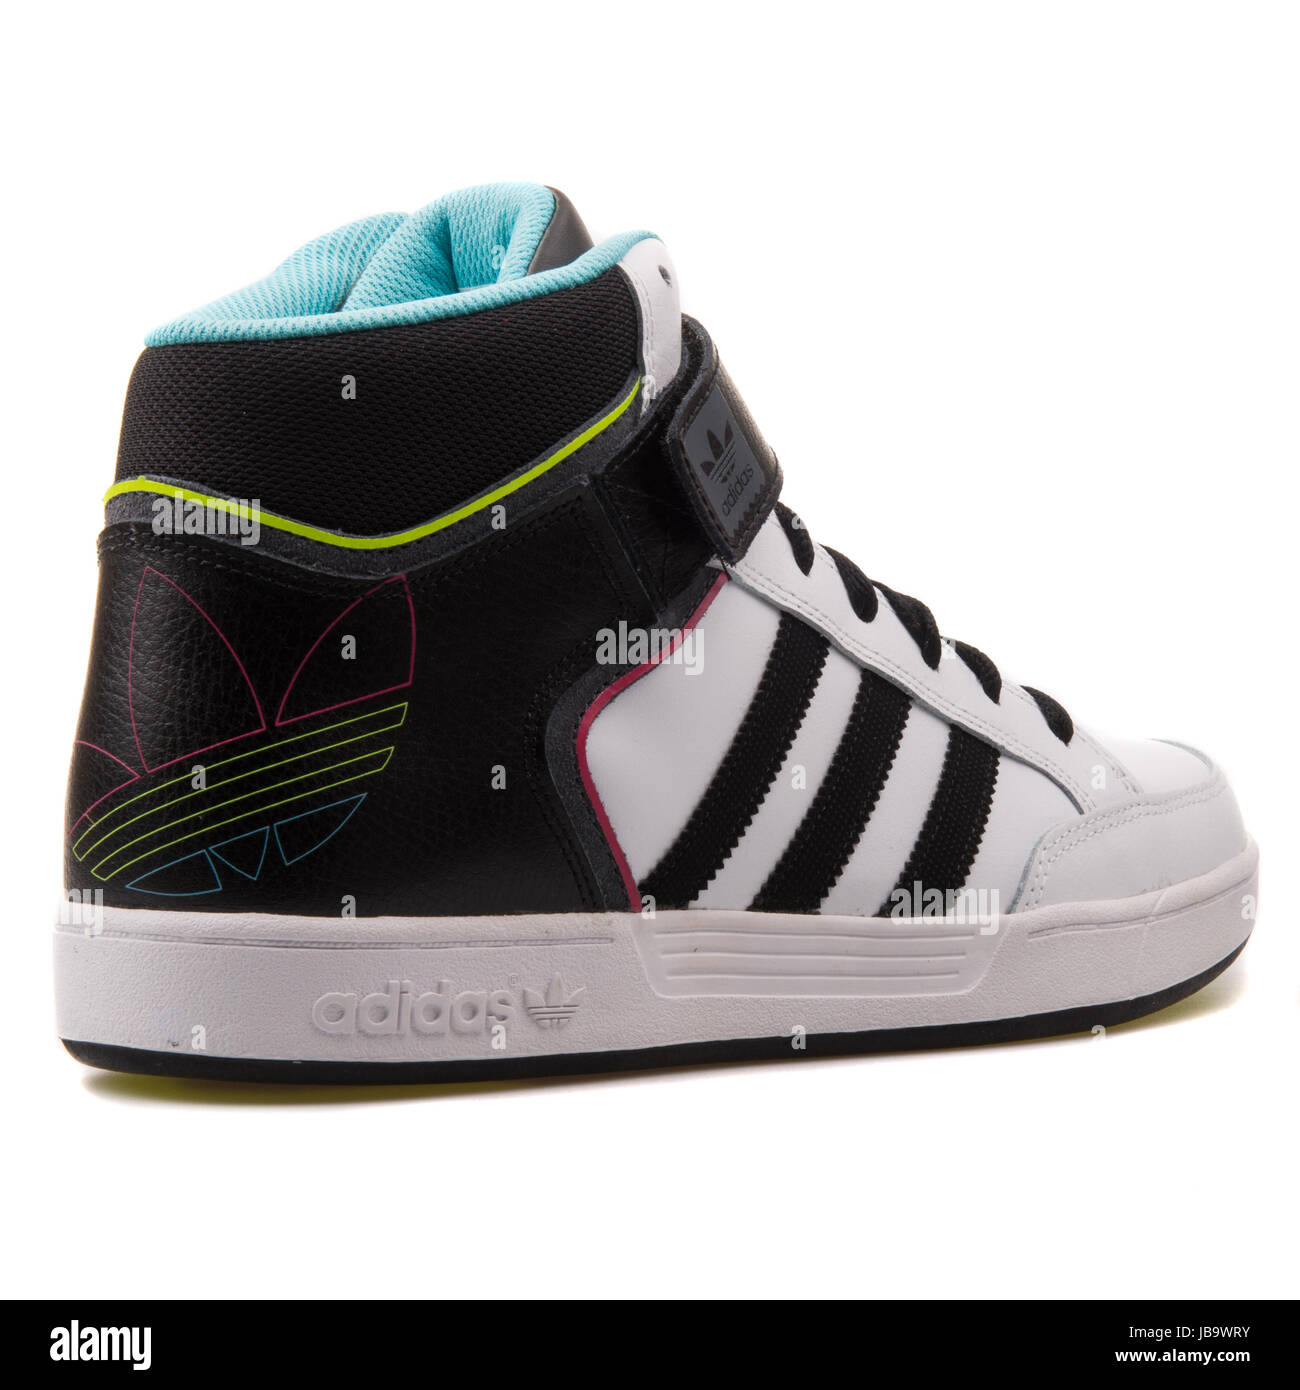 Adidas Varial Mid White and Black Men's Skateboarding Shoes ...